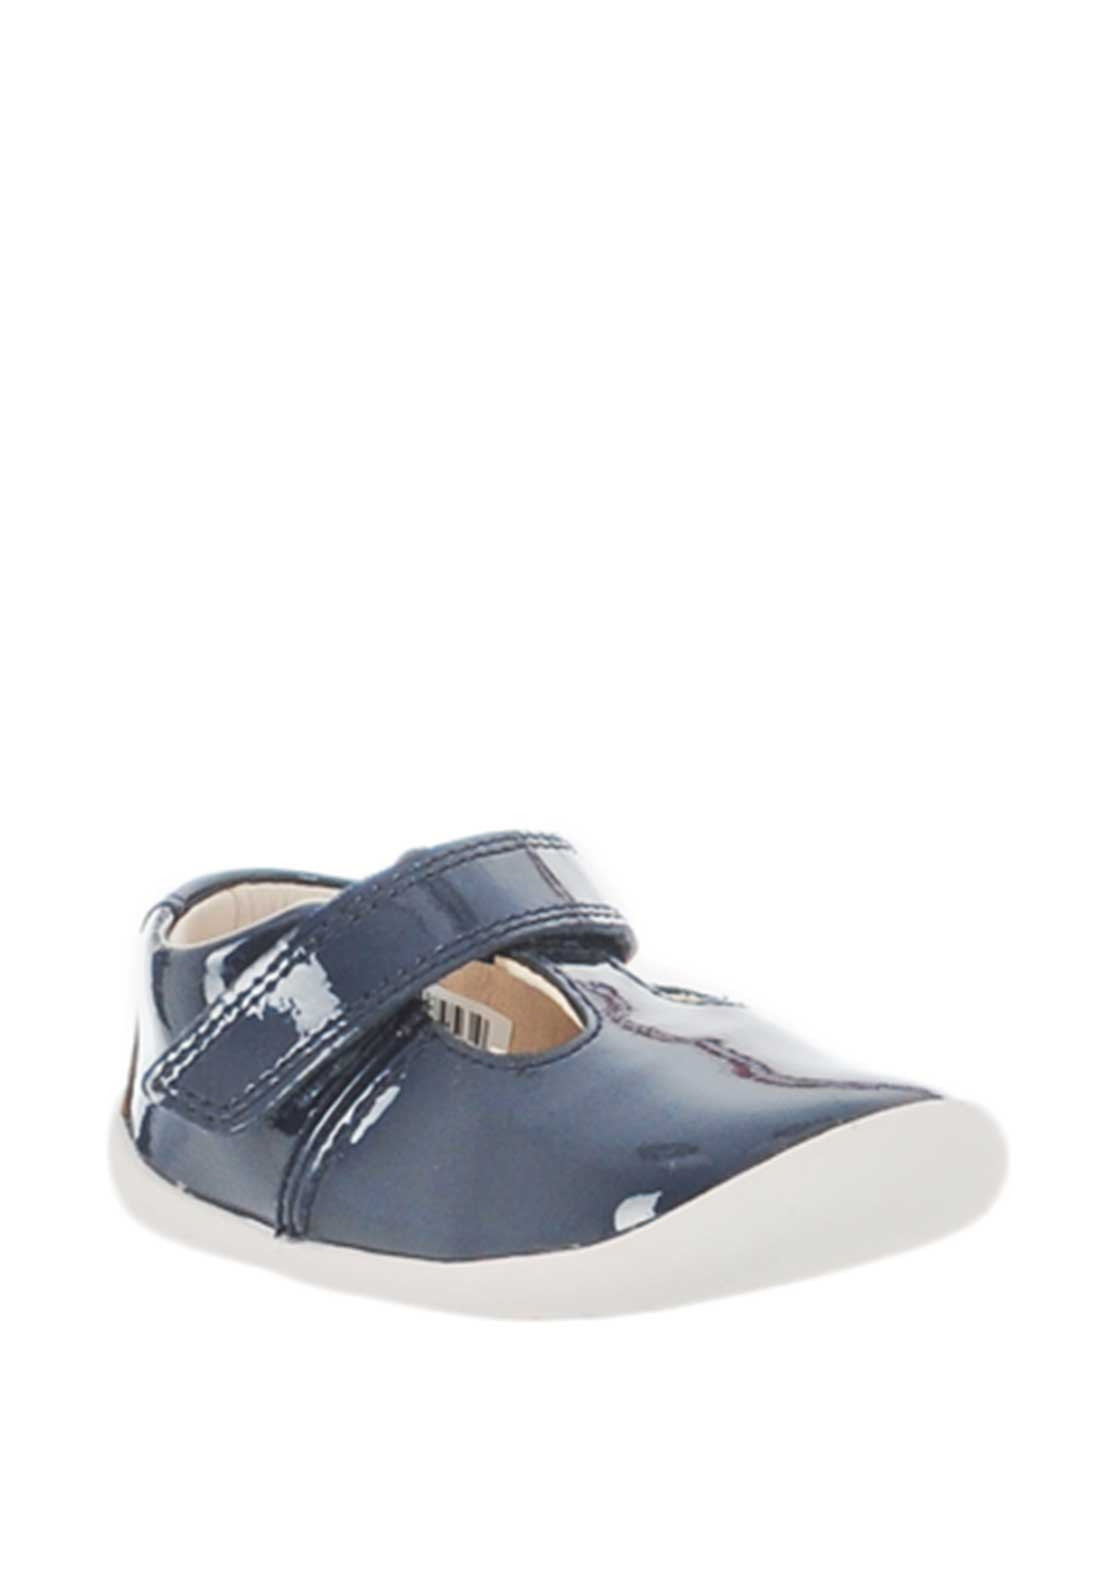 06fa70b40da Clarks Baby Girl Roamer Go Pre-Walking Shoes, Navy. Be the first to review  this product